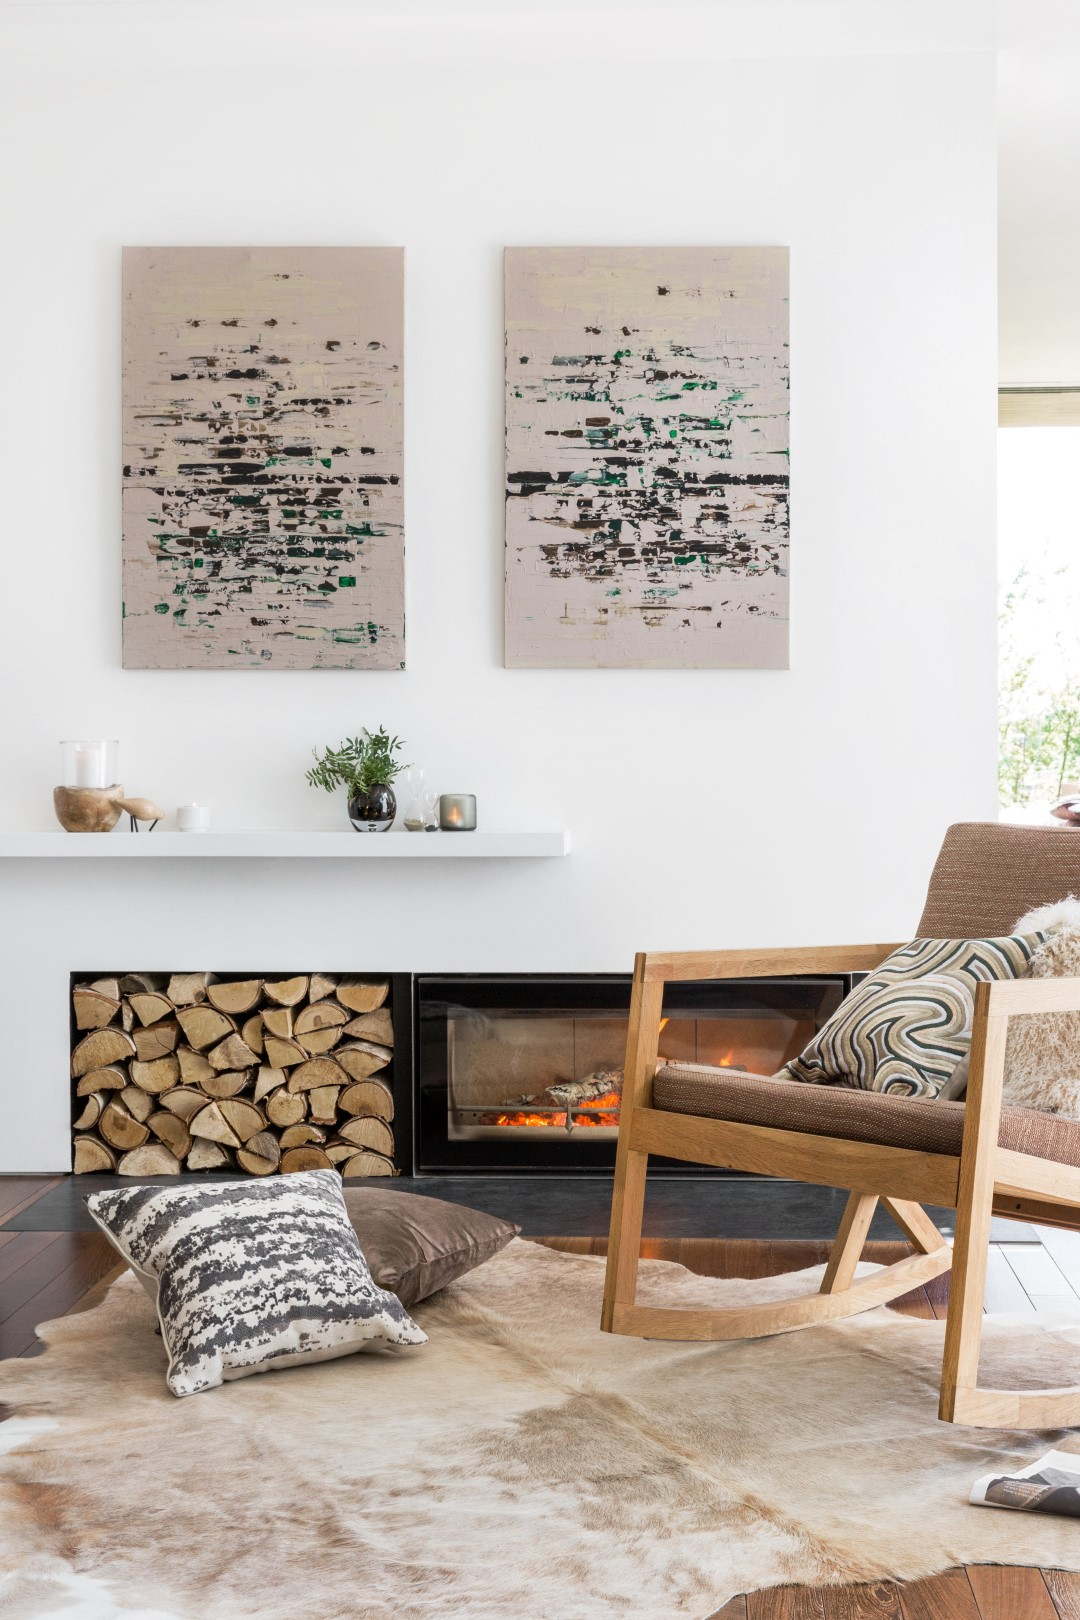 Hygge how to embrace the cosy danish concept - Home decor designers concept ...